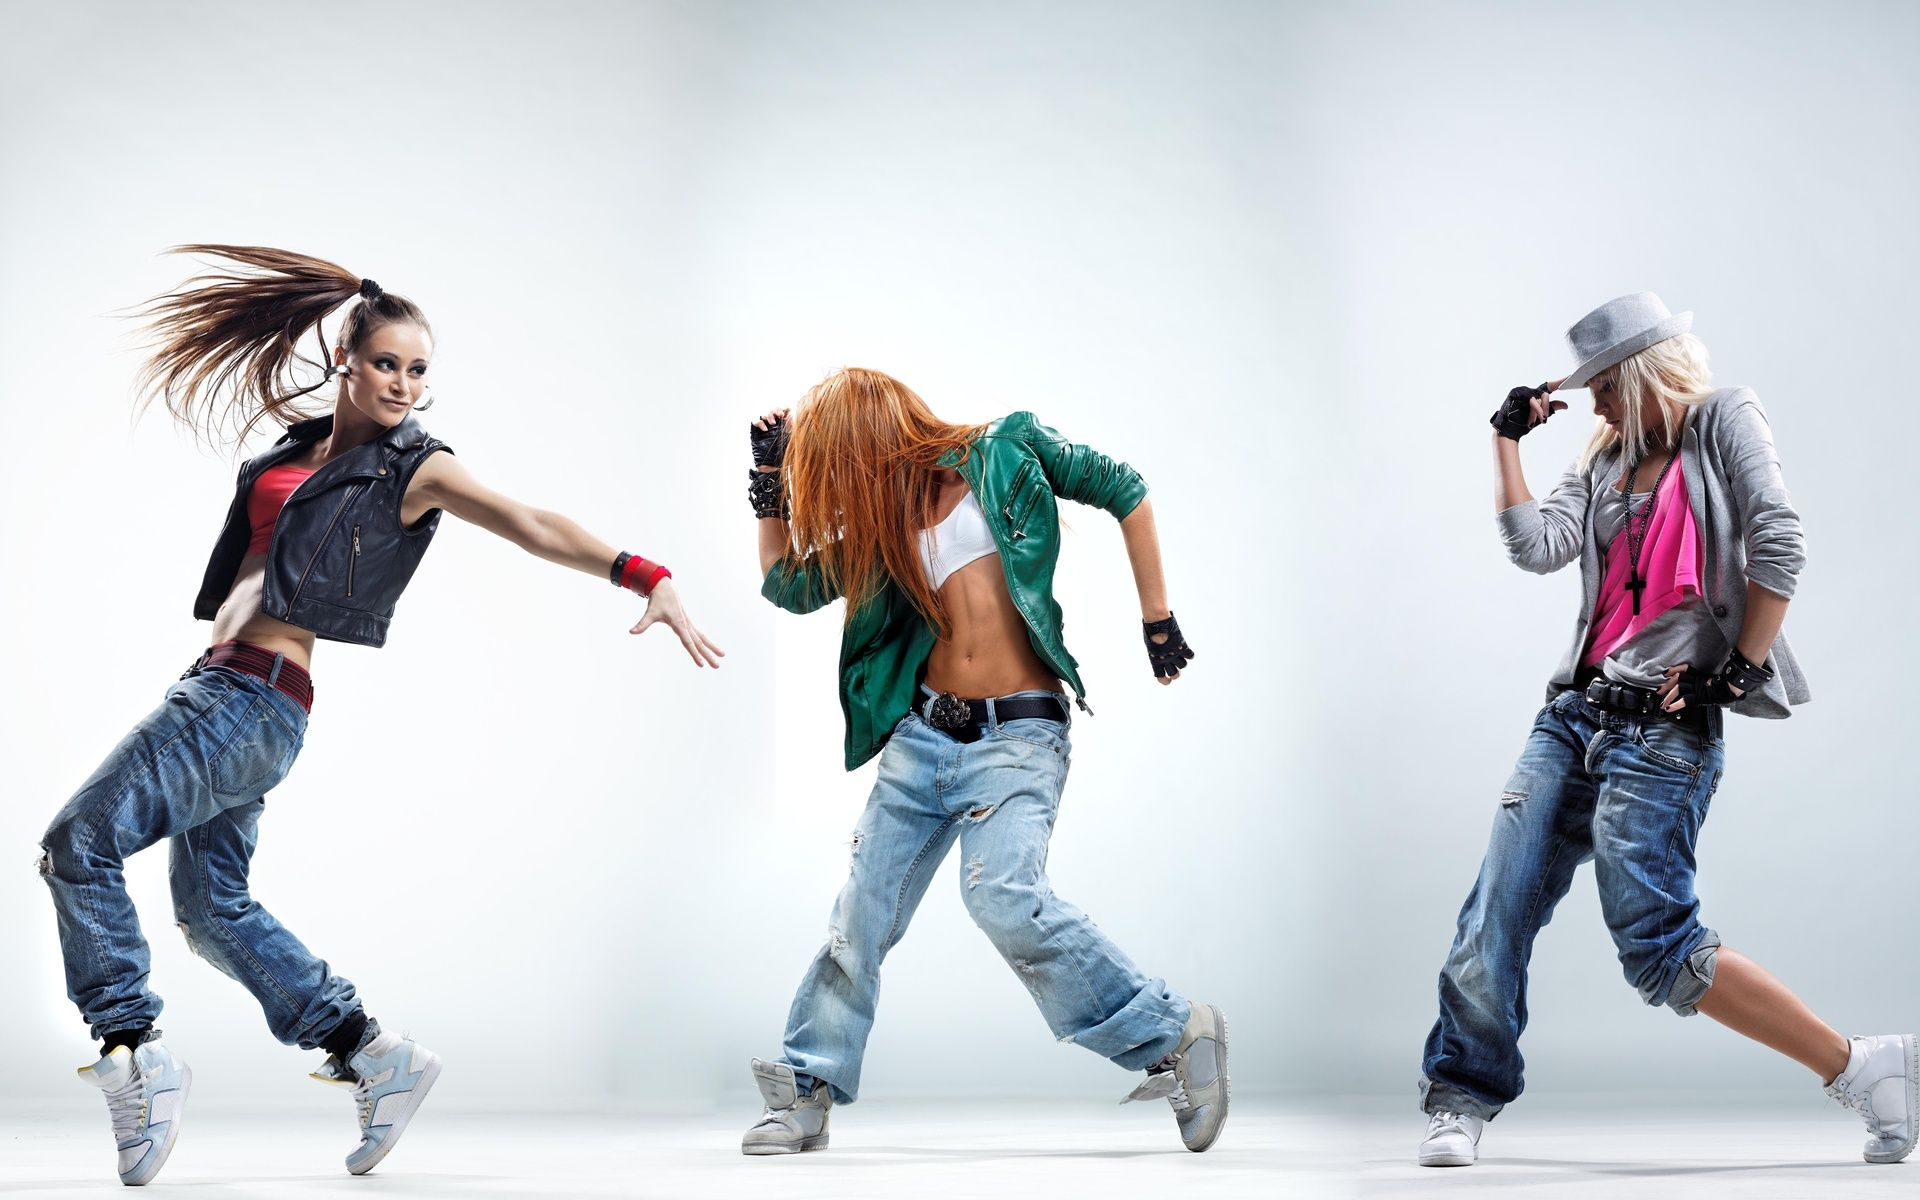 Pin Von Photography By Jacquelynn Auf Hip Hop Style Street Dance Hip Hop Dance Tanz Mode